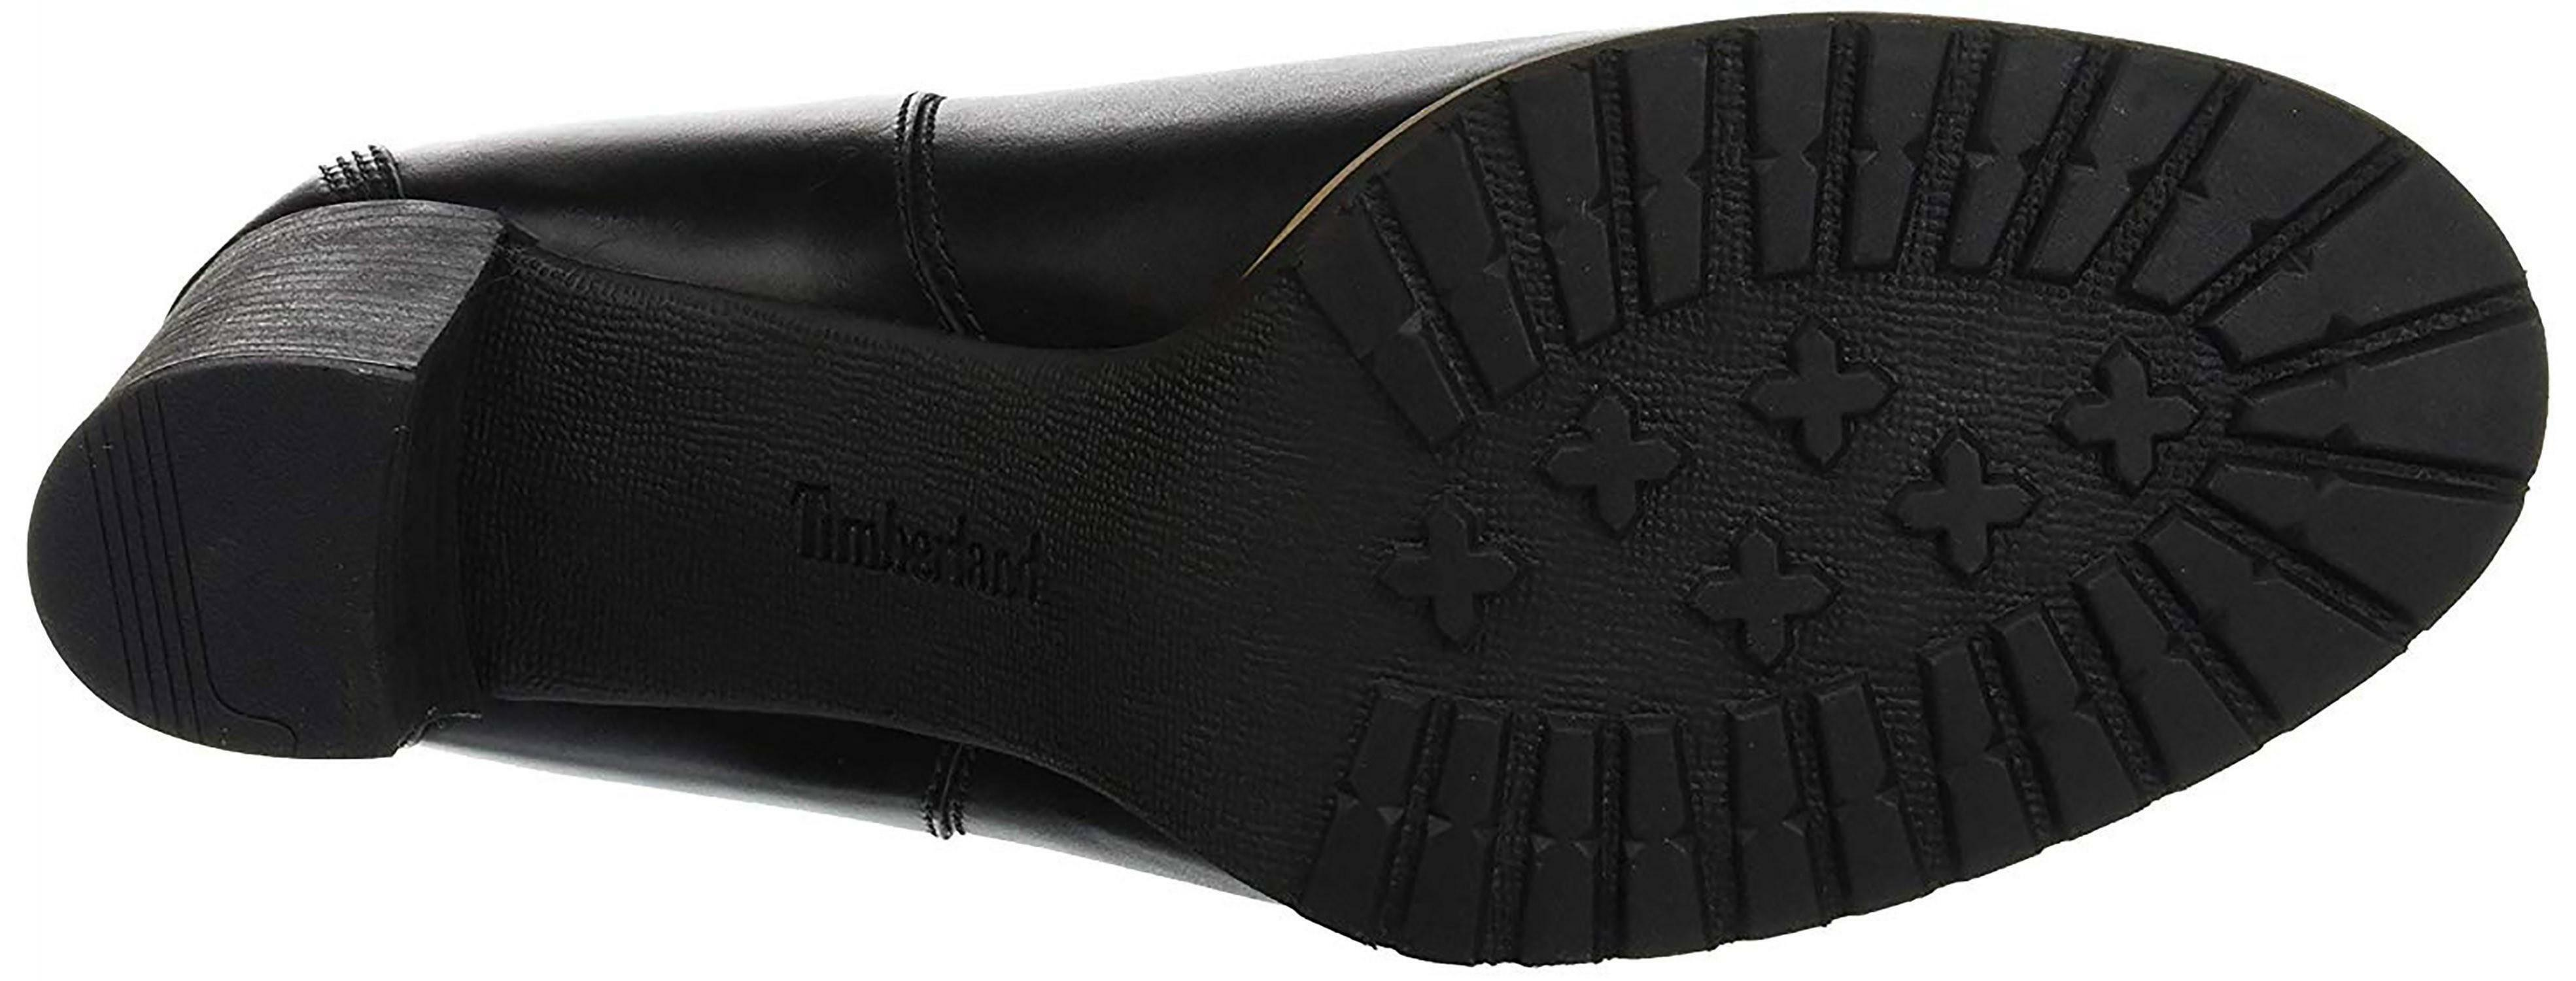 timberland timberland leslie anne stivaletti donna pelle neri a1pys